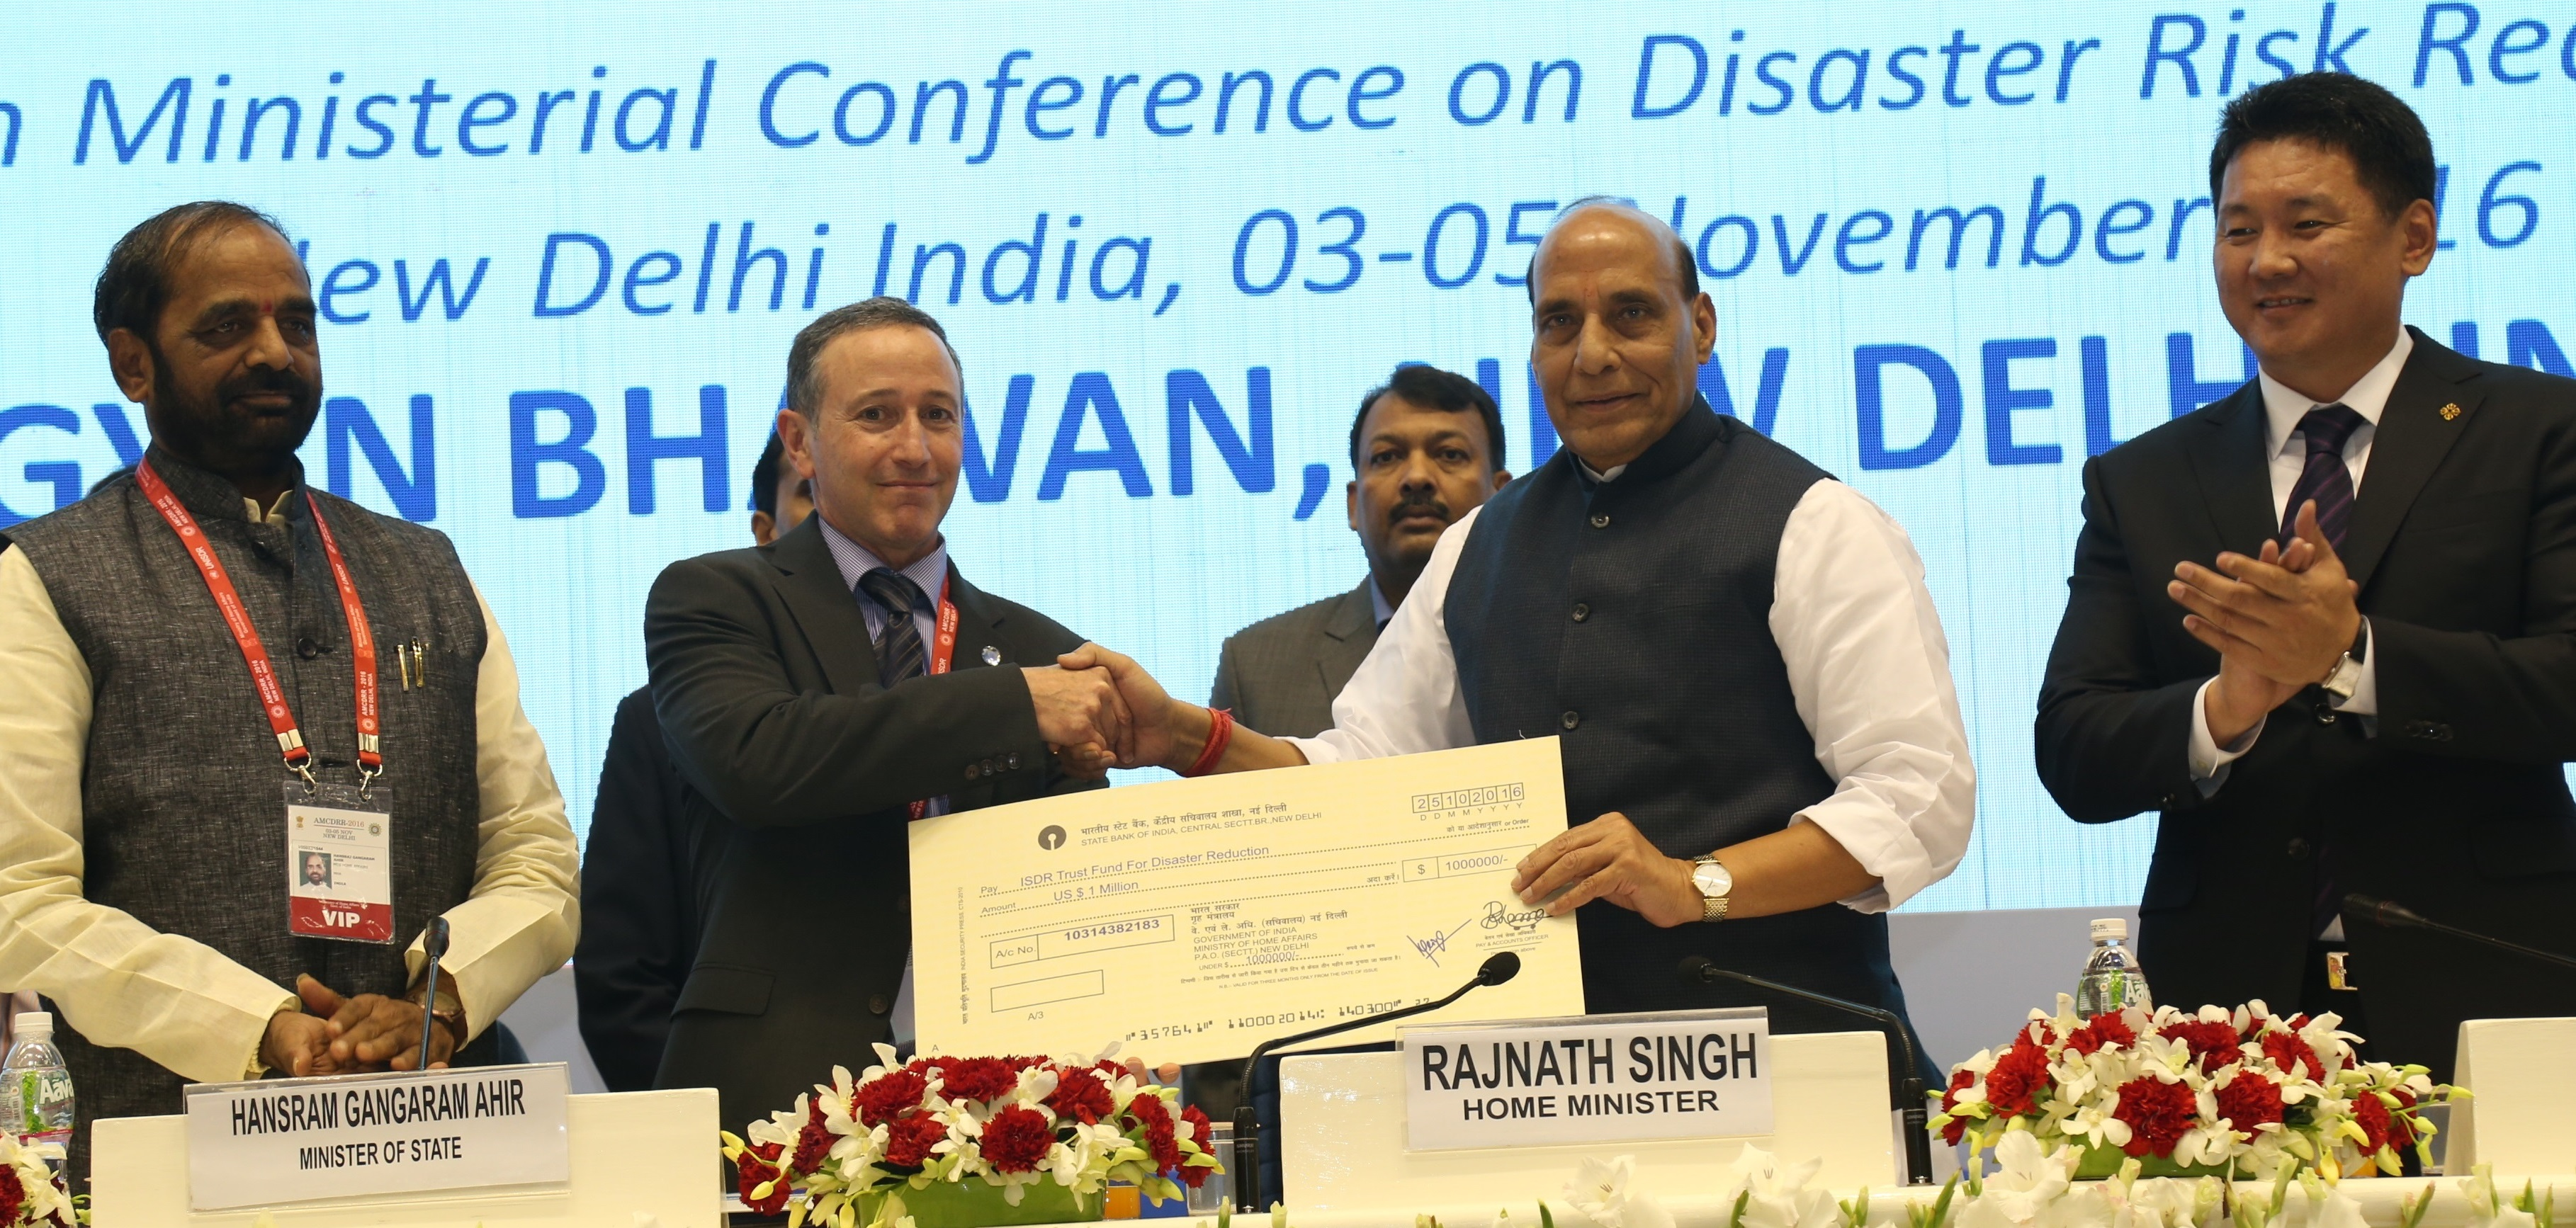 The Union Home Minister, Shri Rajnath Singh at the closing ceremony of the Asian Ministerial Conference for Disaster Risk Reduction (AMCDRR) 2016, in New Delhi on November 05, 2016. The Ministers of State for Home Affairs, Shri Hansraj Gangaram Ahir & Shri Kiren Rijiju, the Additional Principal Secretary to the Prime Minister, Dr. P.K. Mishra and the Union Home Secretary, Shri Rajiv Mehrishi are also seen.